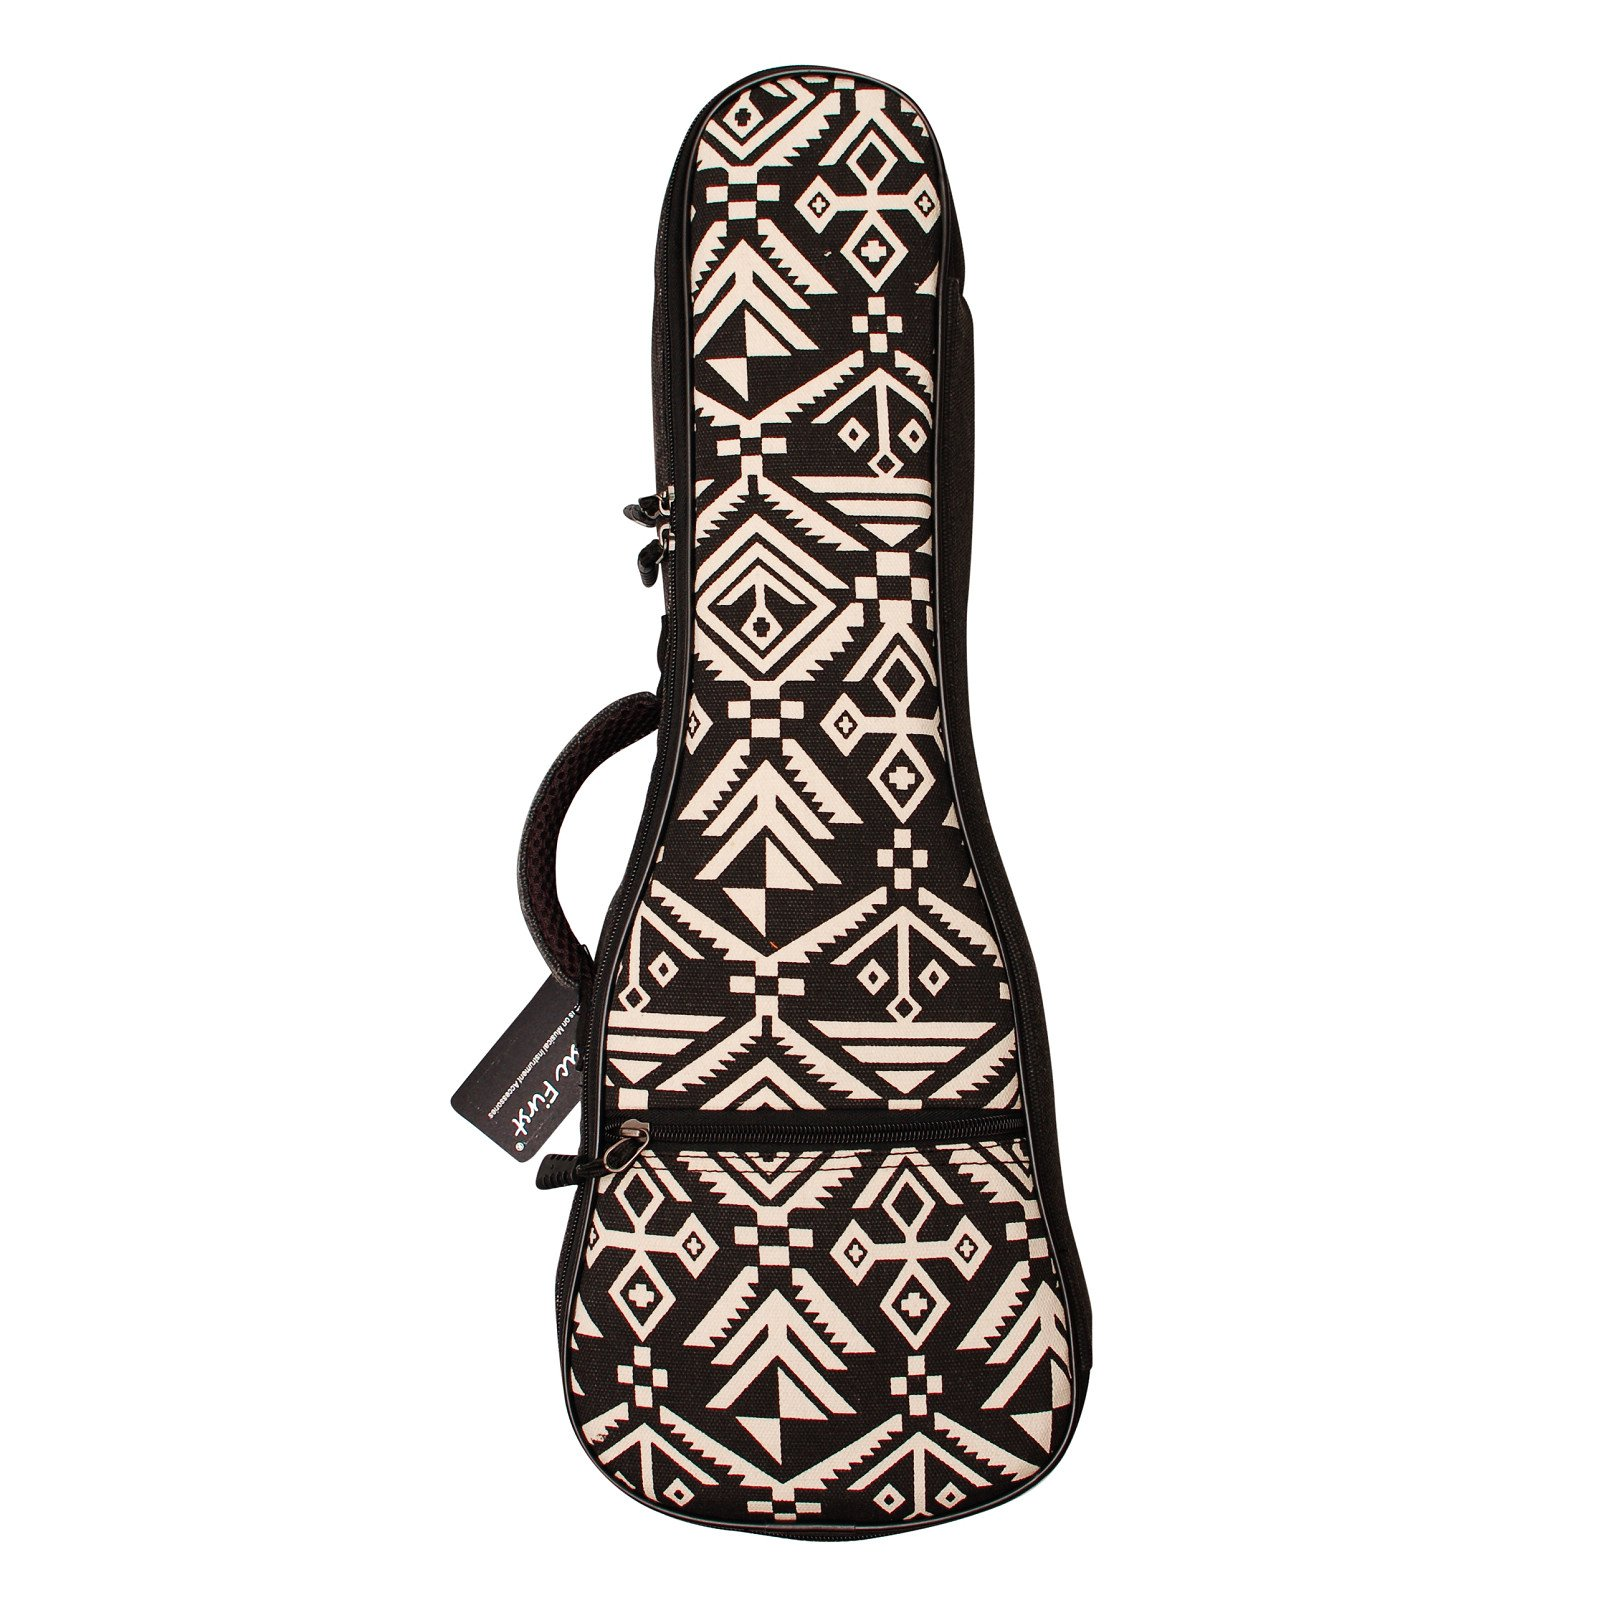 MUSIC FIRST cotton Vintage style 21 inch Soprano''Aztec'' Ukulele case ukulele bag ukulele cover